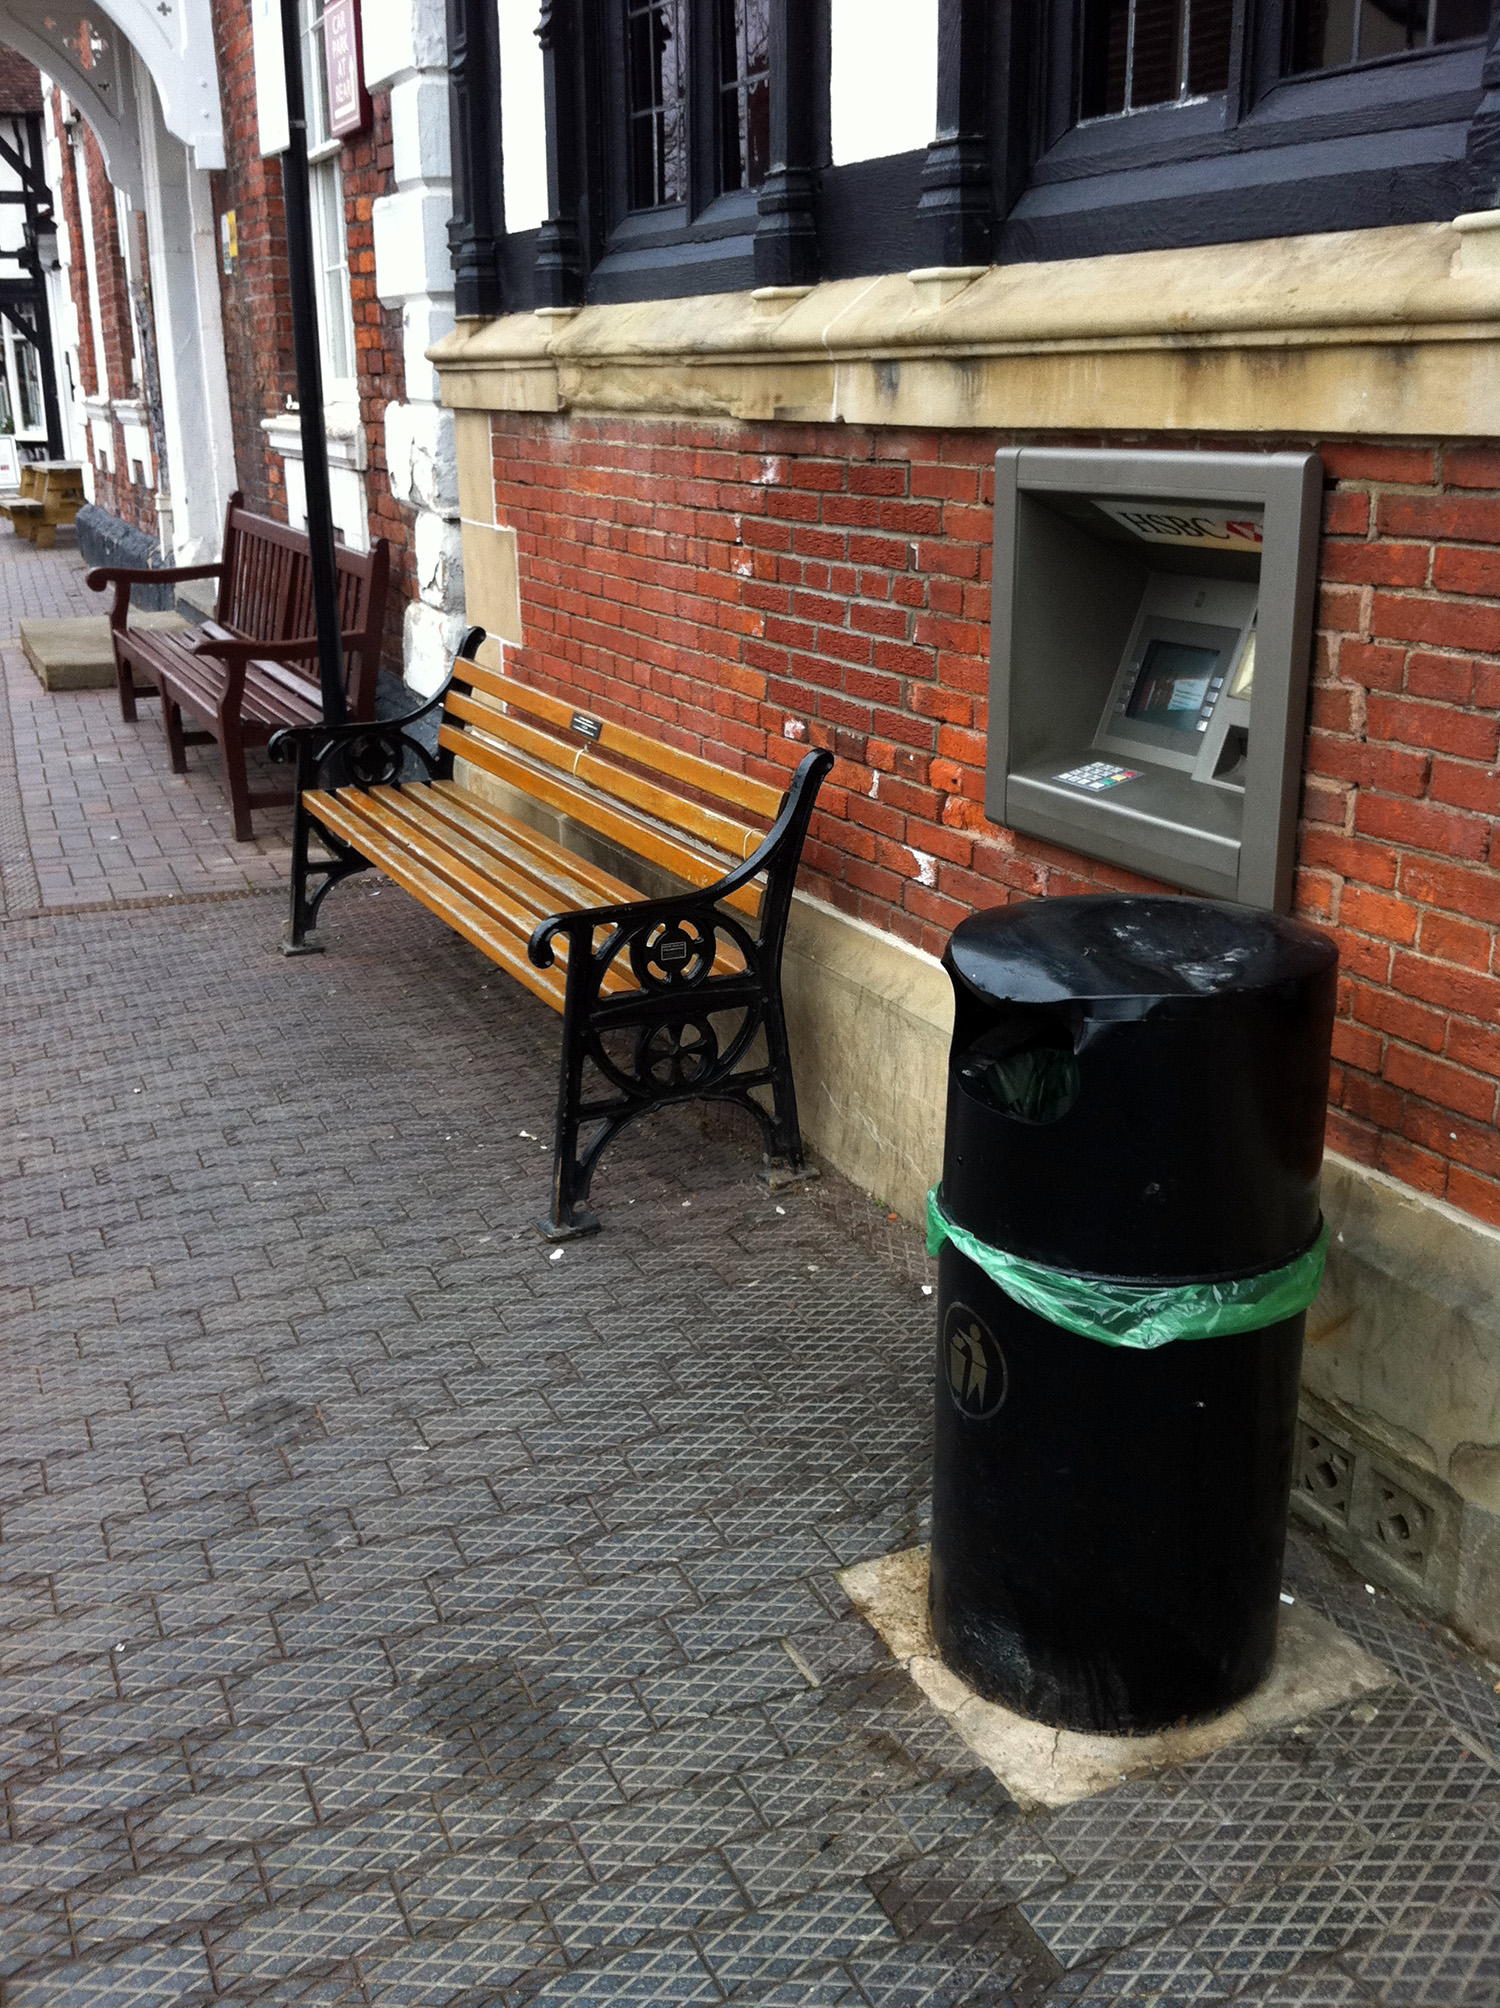 Different styles of street furniture can create a confused streetscape